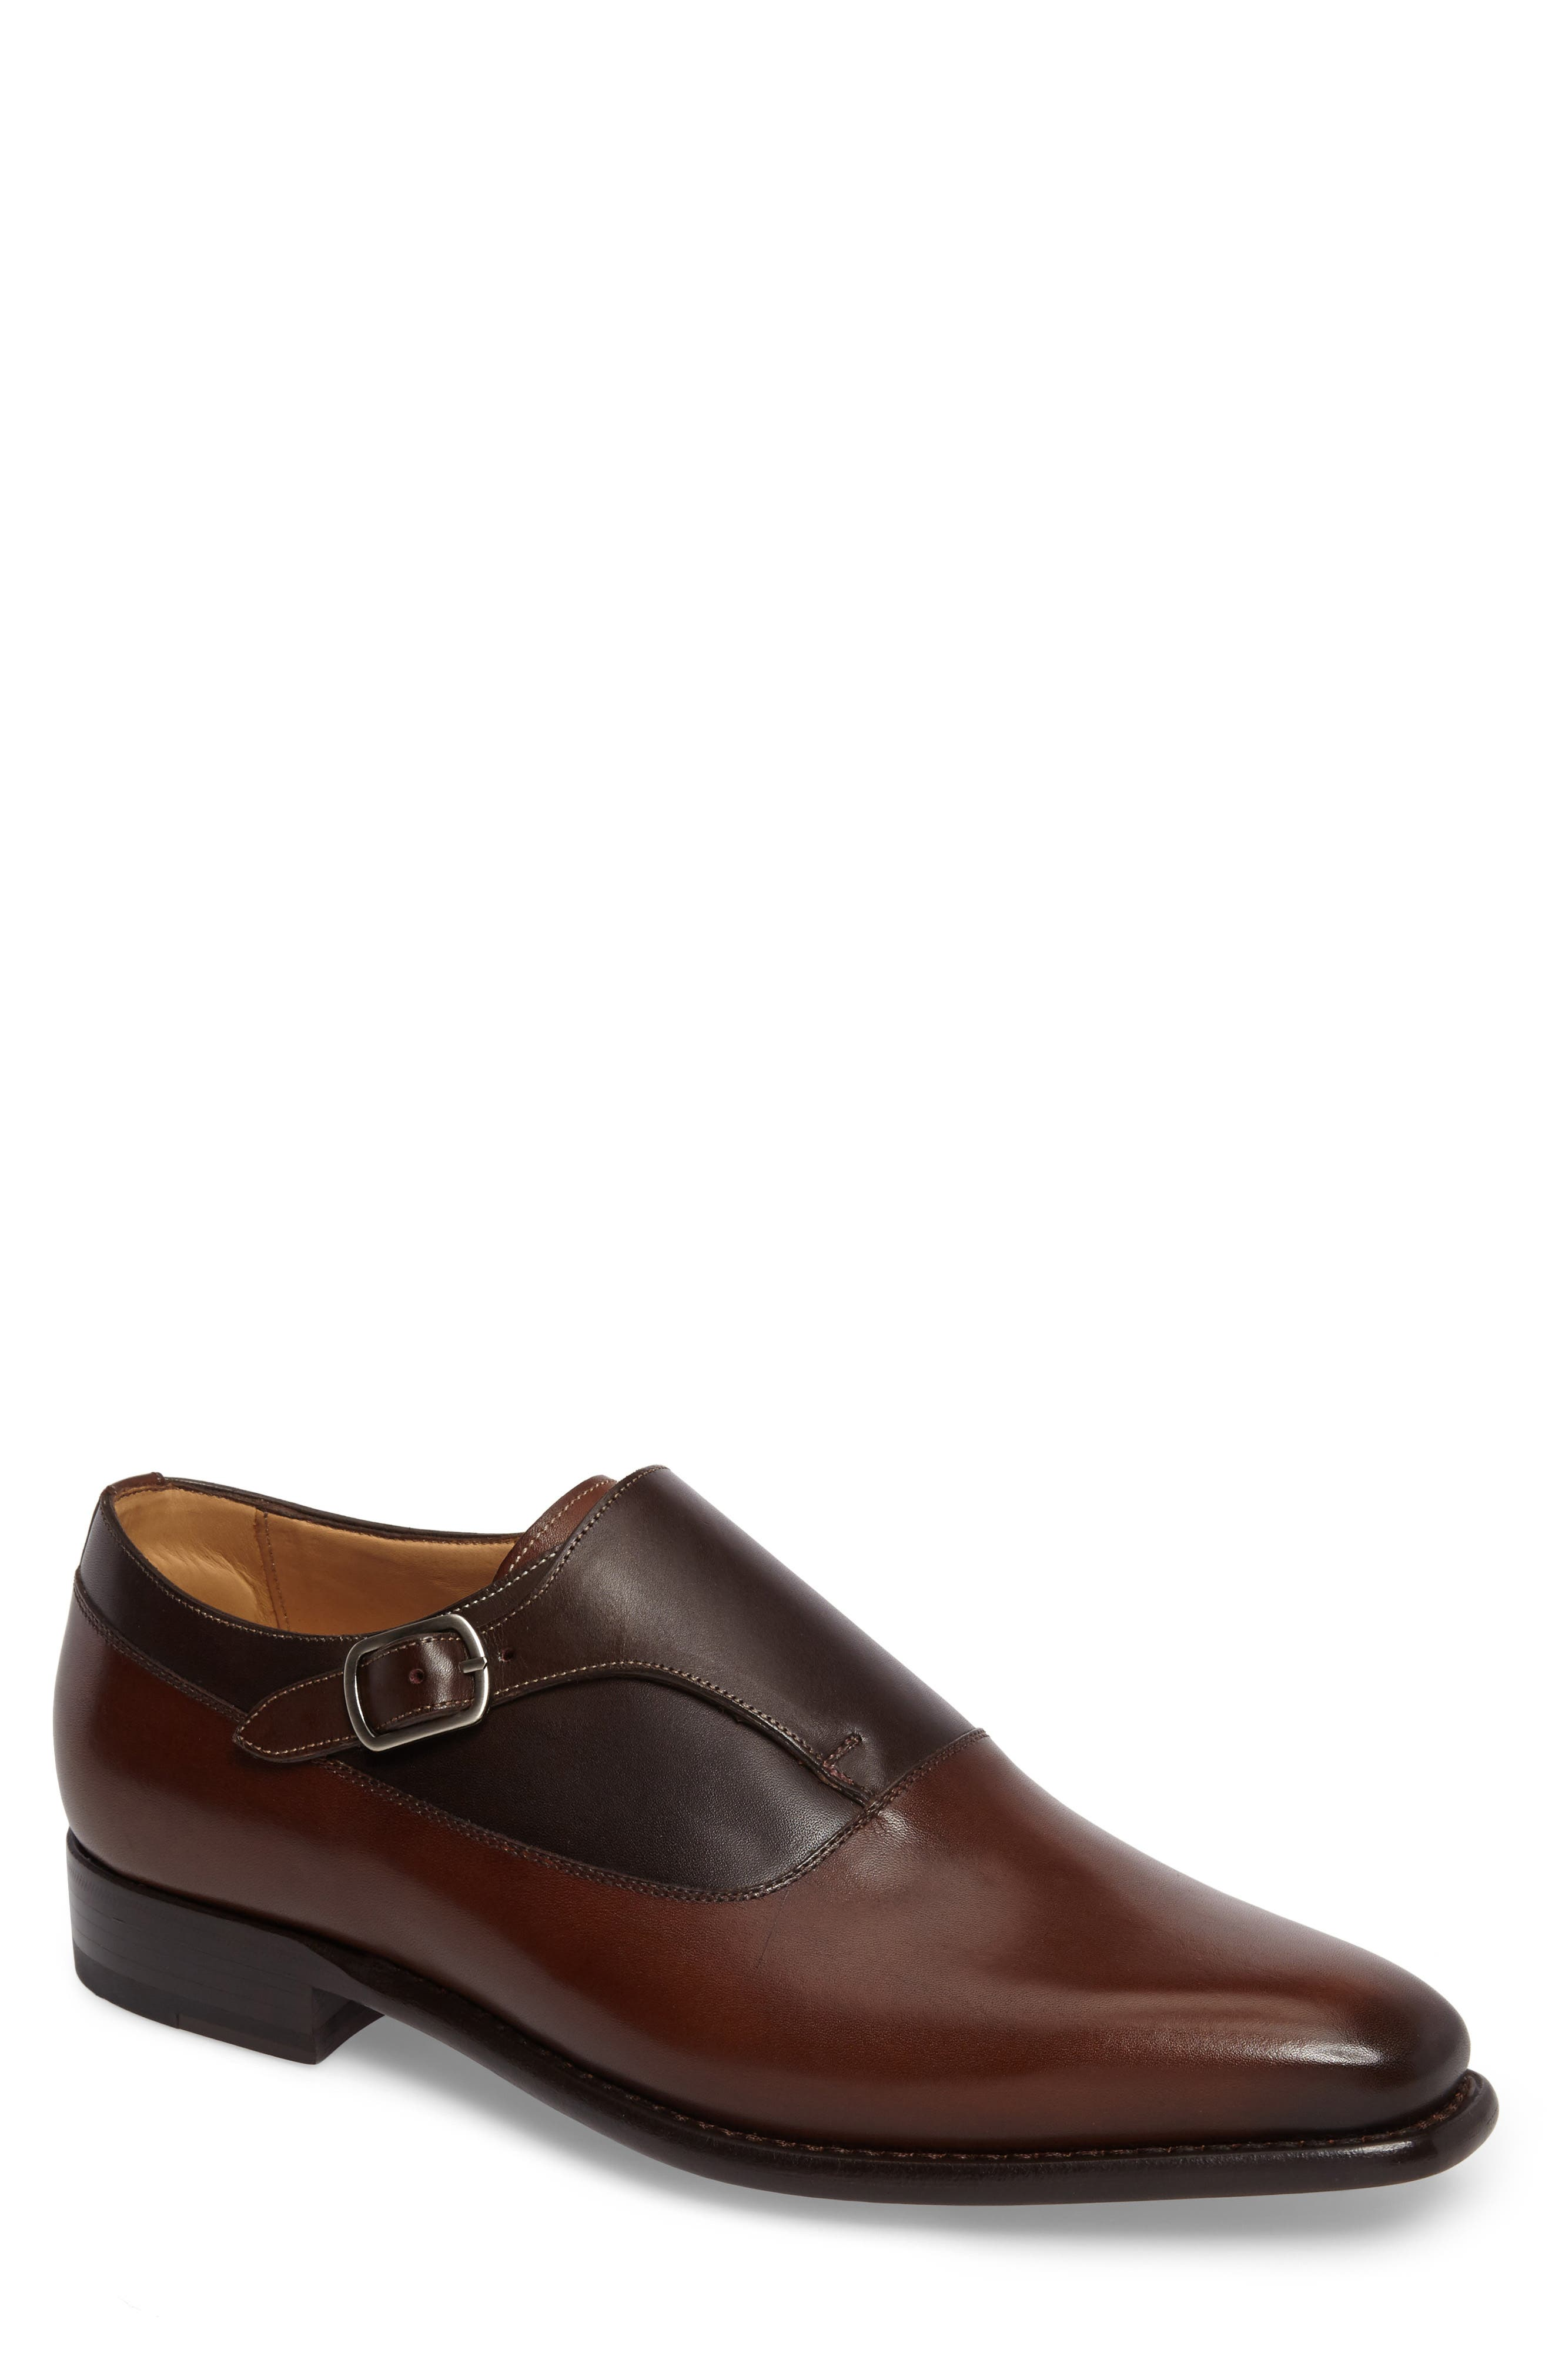 Main Image - Mezlan Algar Monk Strap Shoe (Men)